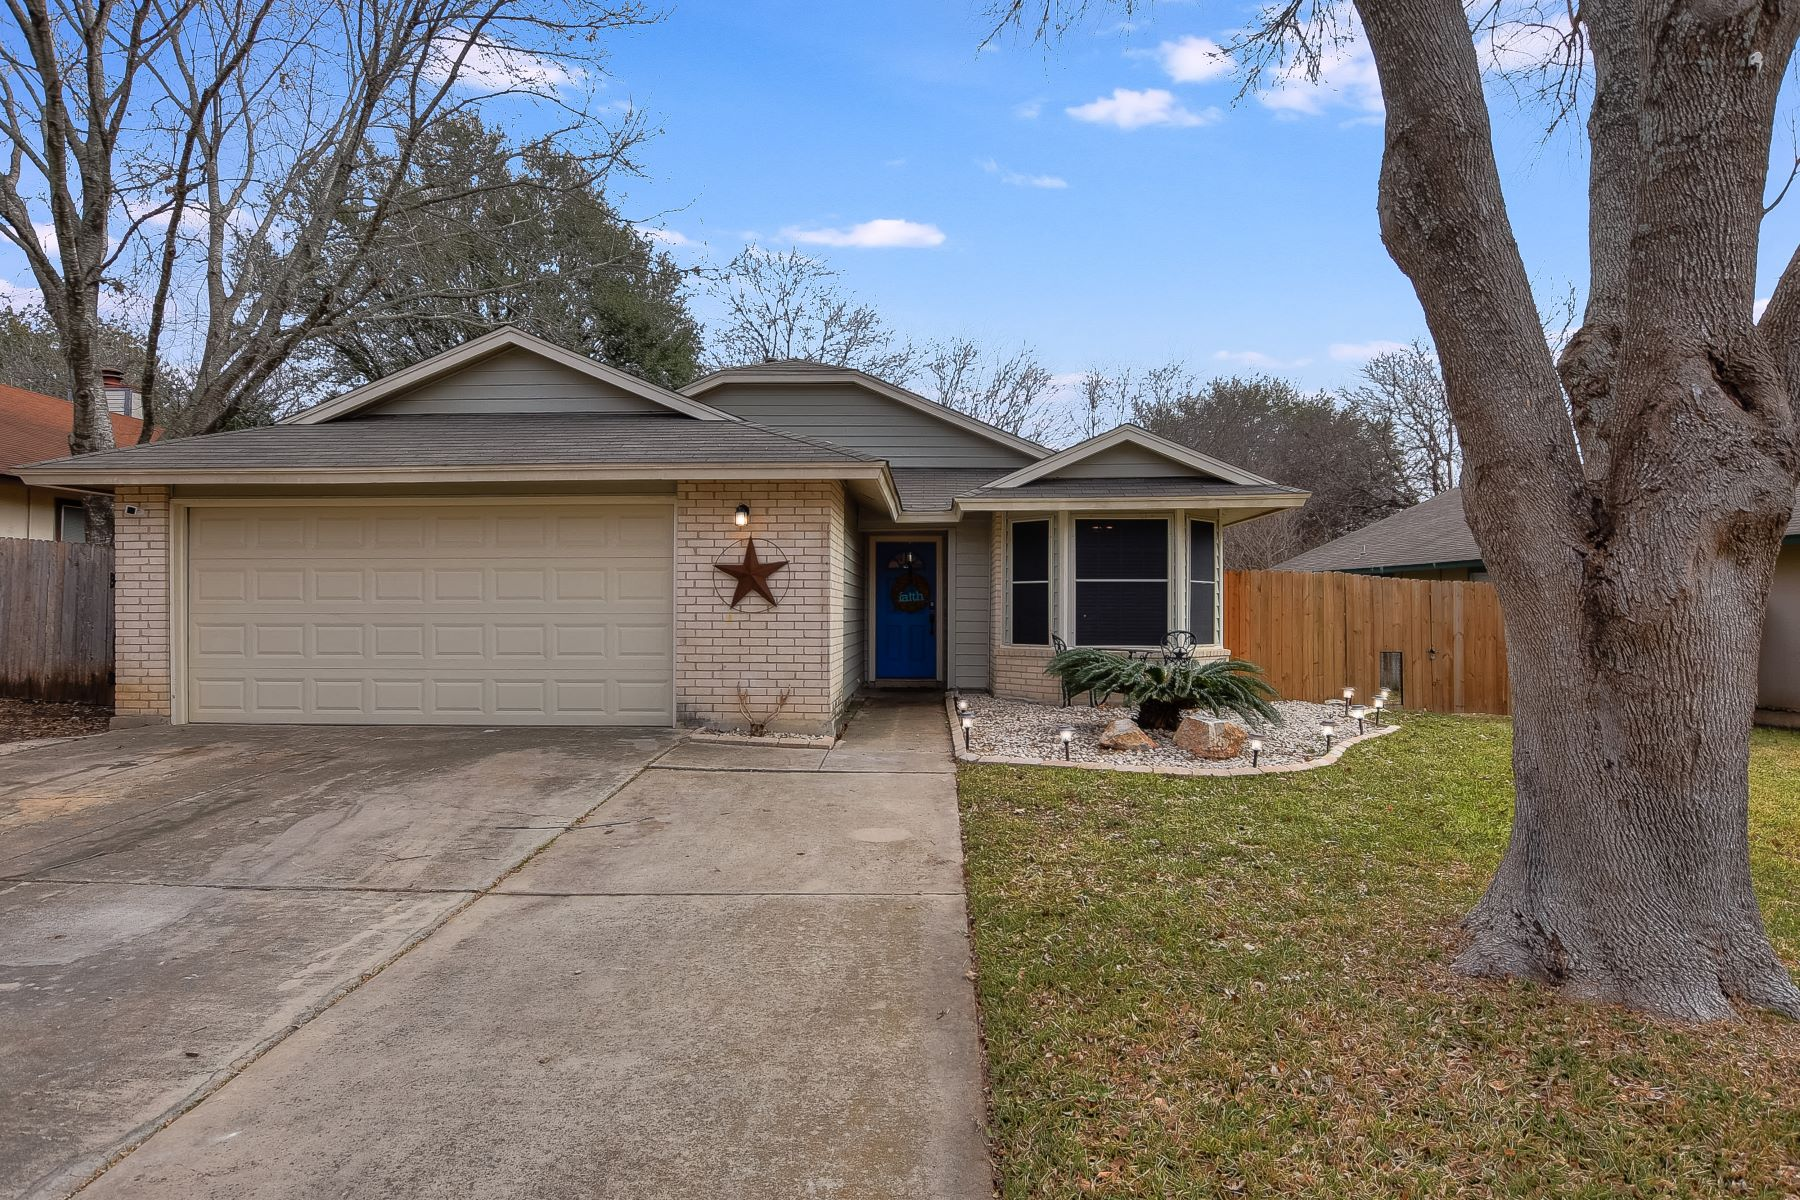 واحد منزل الأسرة للـ Sale في Charming Single Story Home 12230 Ridge Court Street, San Antonio, Texas, 78247 United States